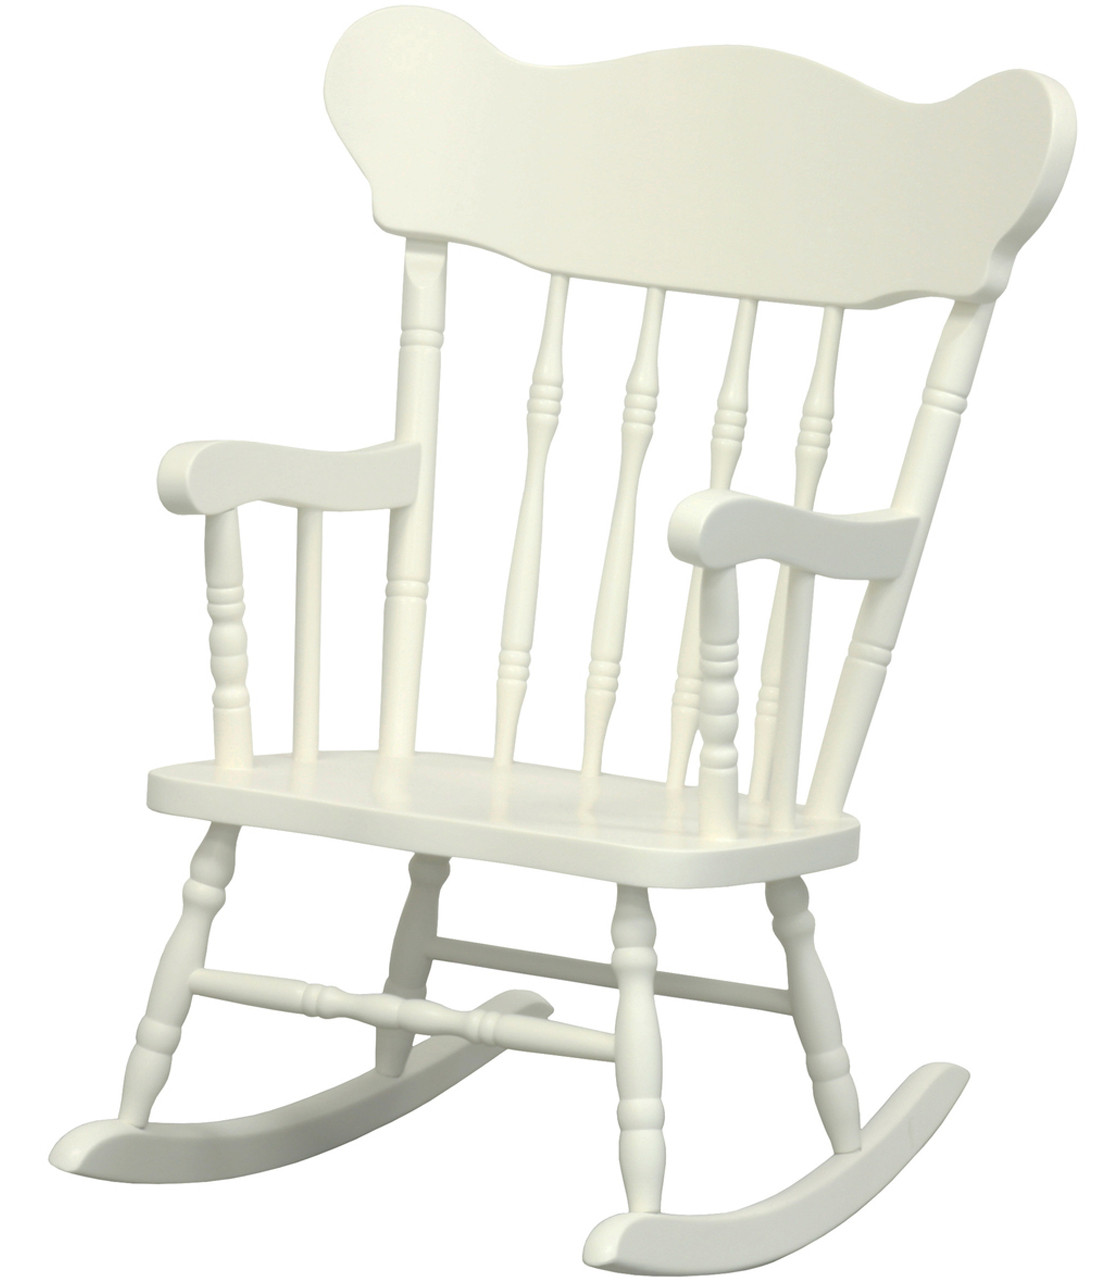 Terrific Childs Rocking Chair In Antico White Machost Co Dining Chair Design Ideas Machostcouk